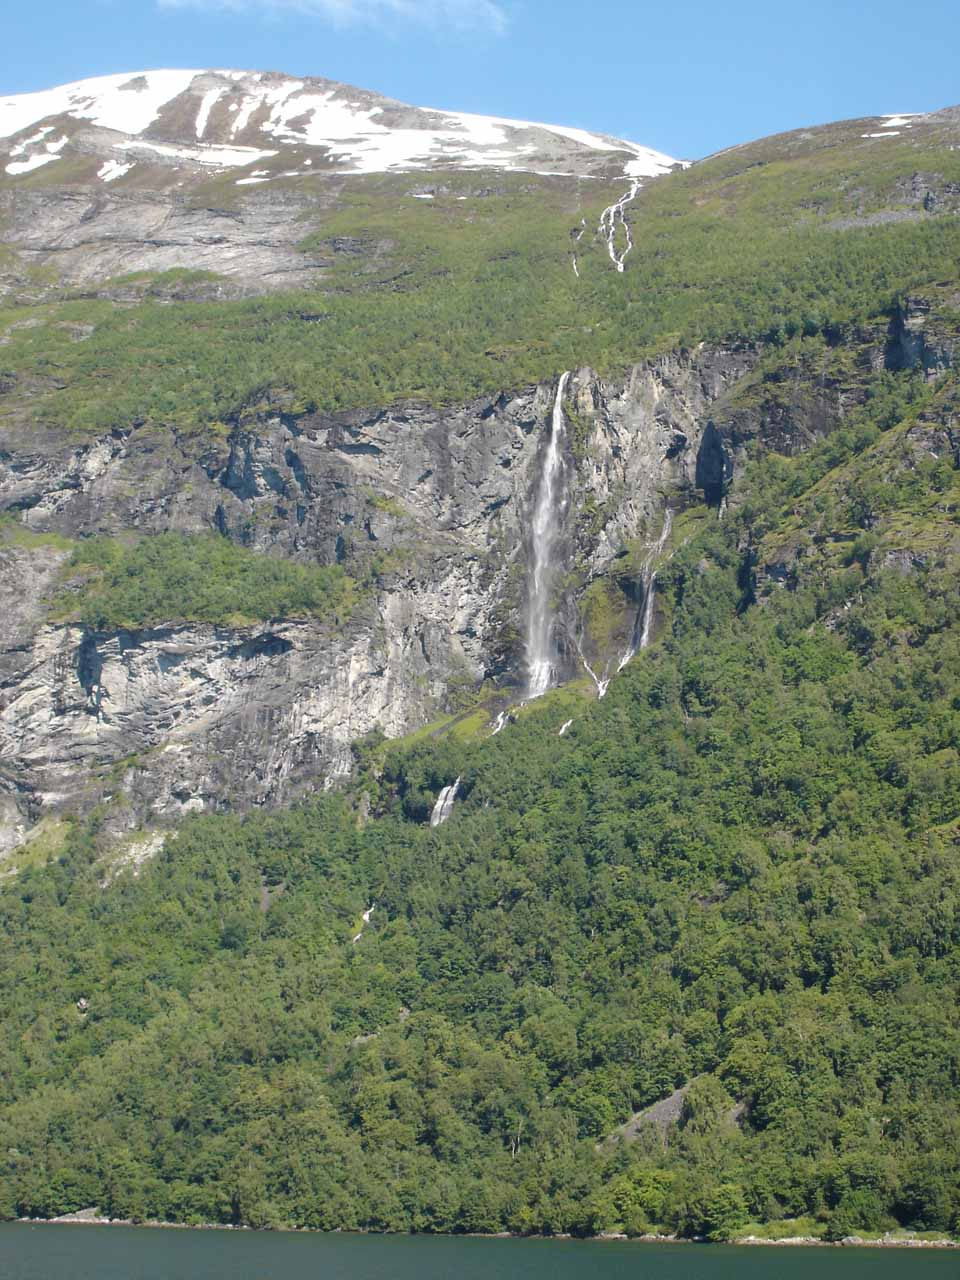 This thin-flowing waterfall was Gjerdefossen, which was the first of the named waterfalls we saw on the Geirangerfjord Cruise